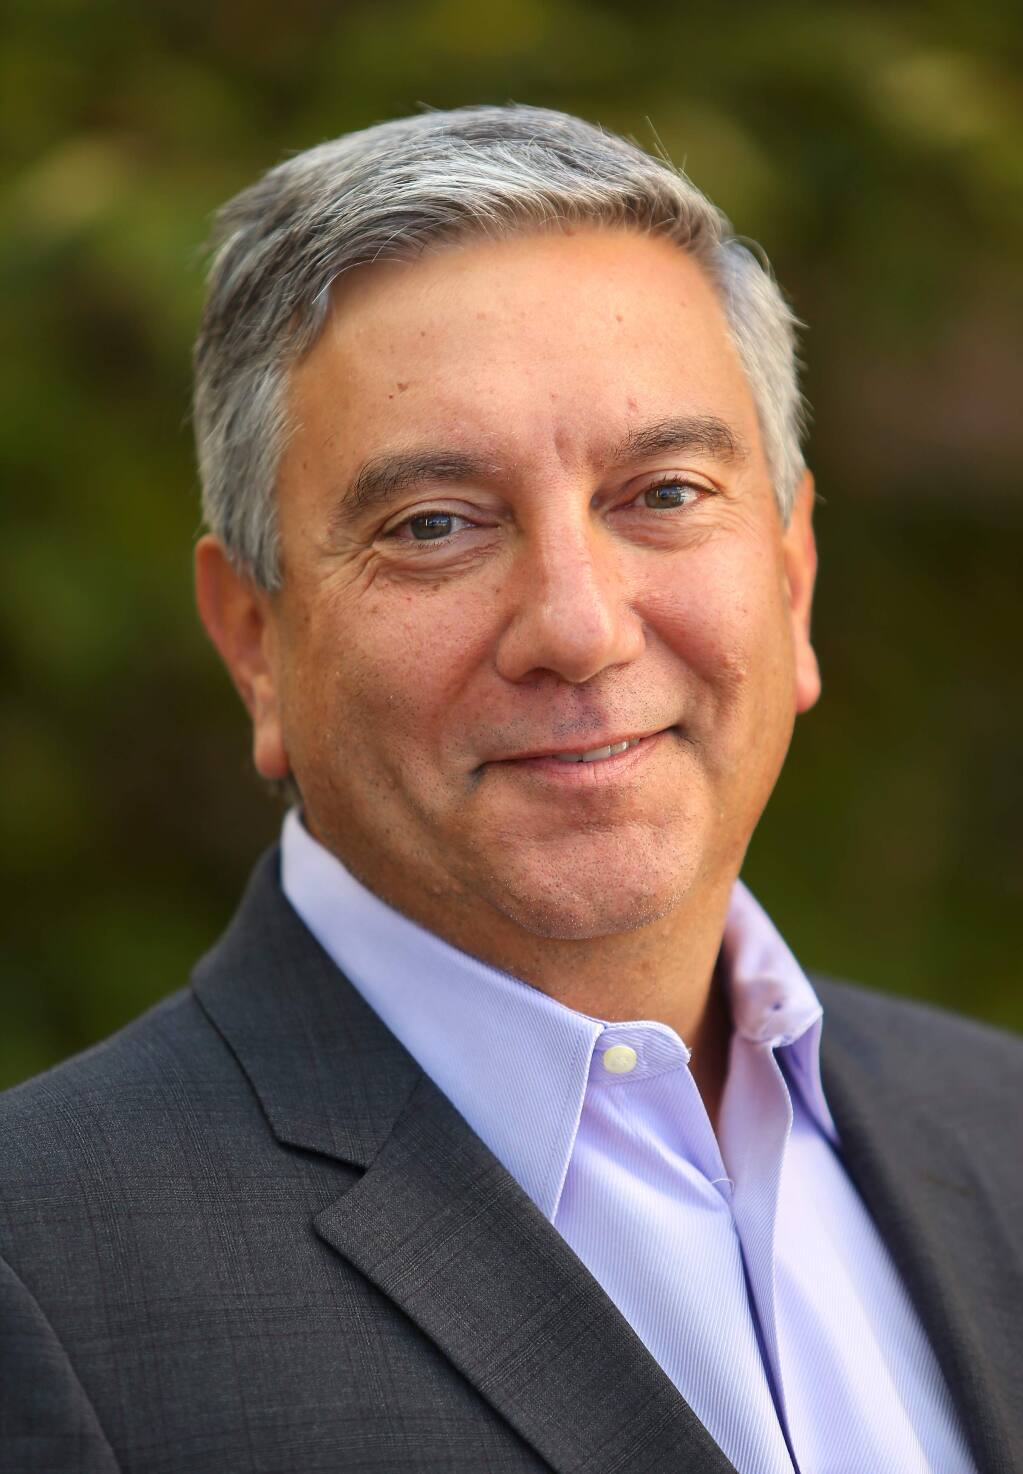 Keysight Technologies President and CEO Ron Nersesian is named chairman of the board in November 2019. (Christopher Chung / The Press Democrat)